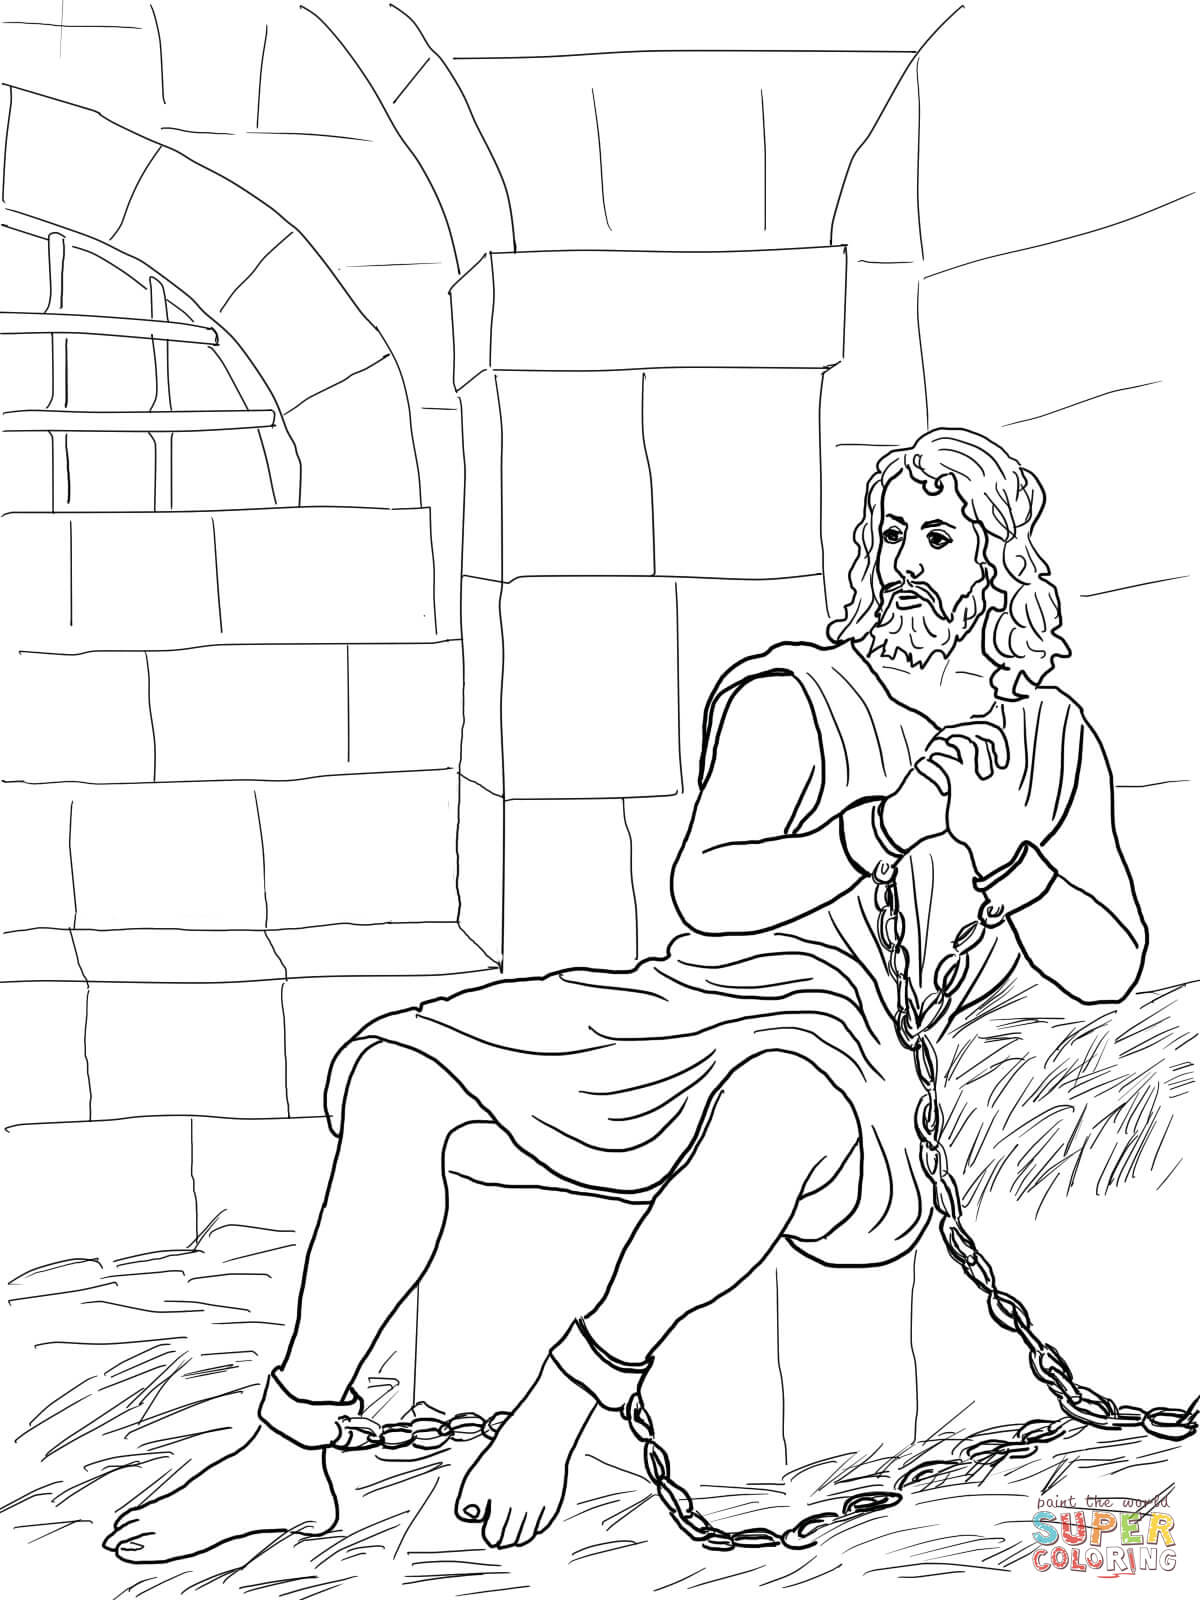 Peter In Prison Coloring Page